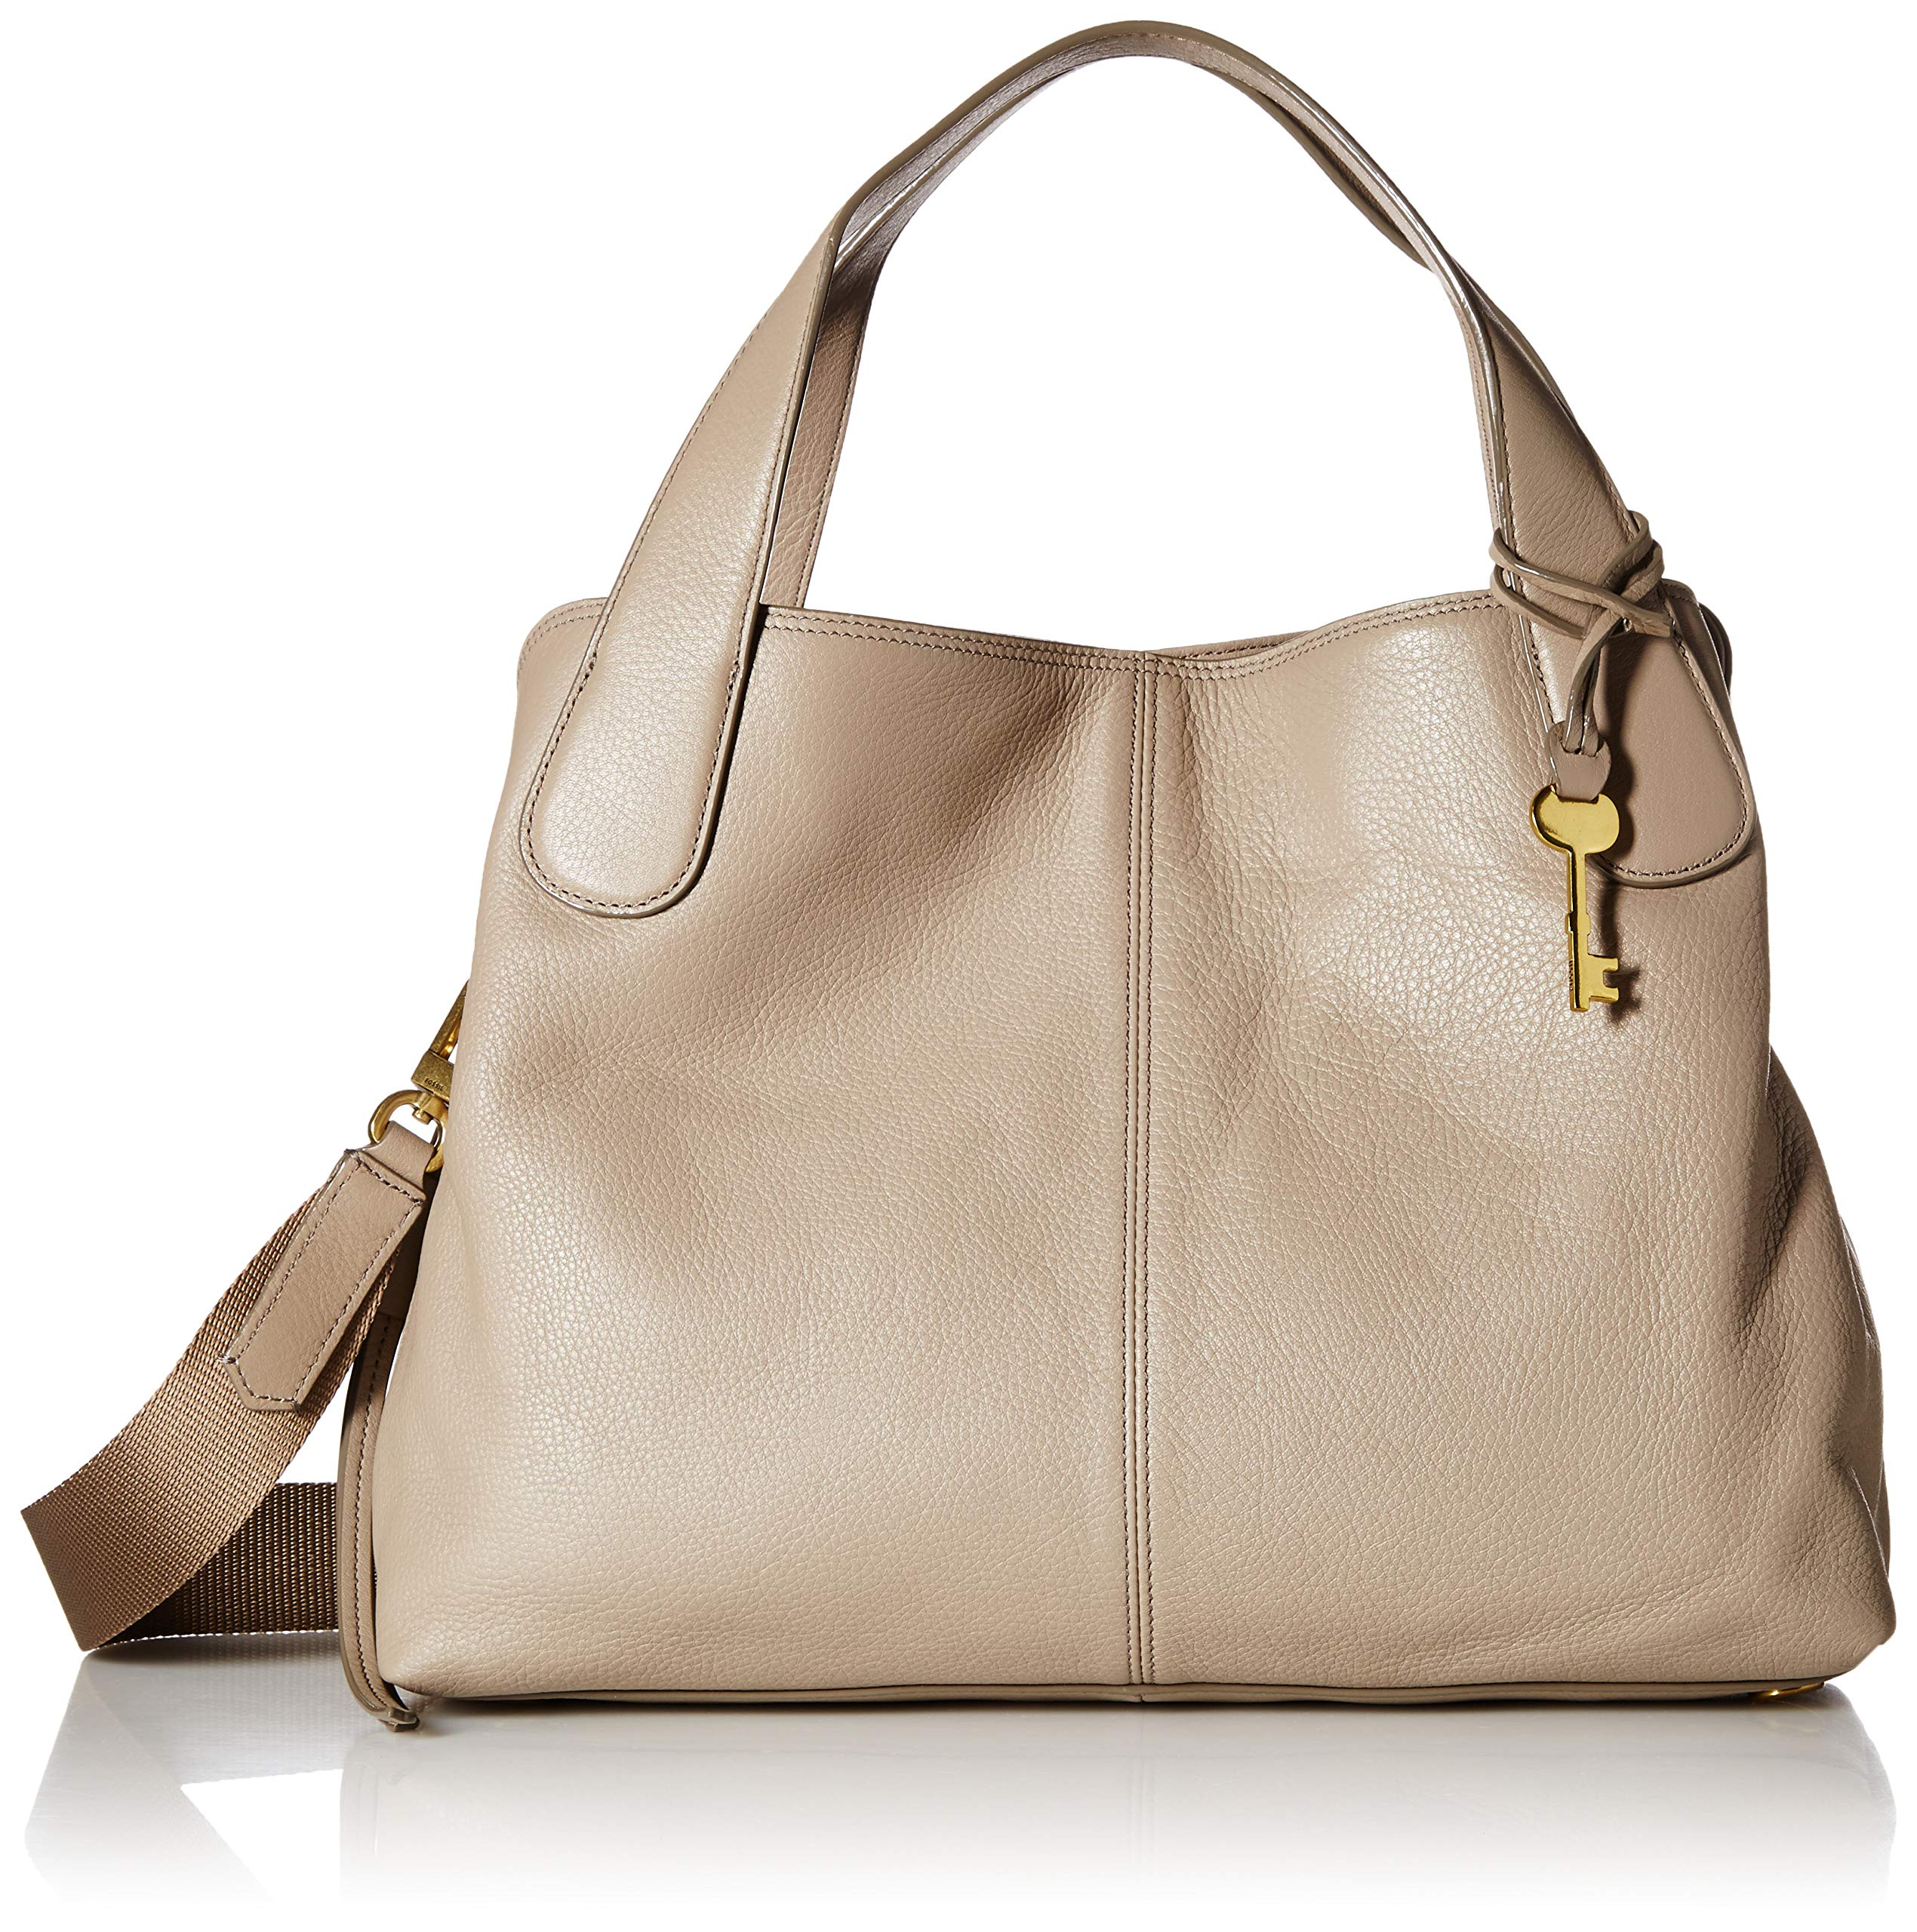 Fossil Maya Satchel Light Taupe, One Size